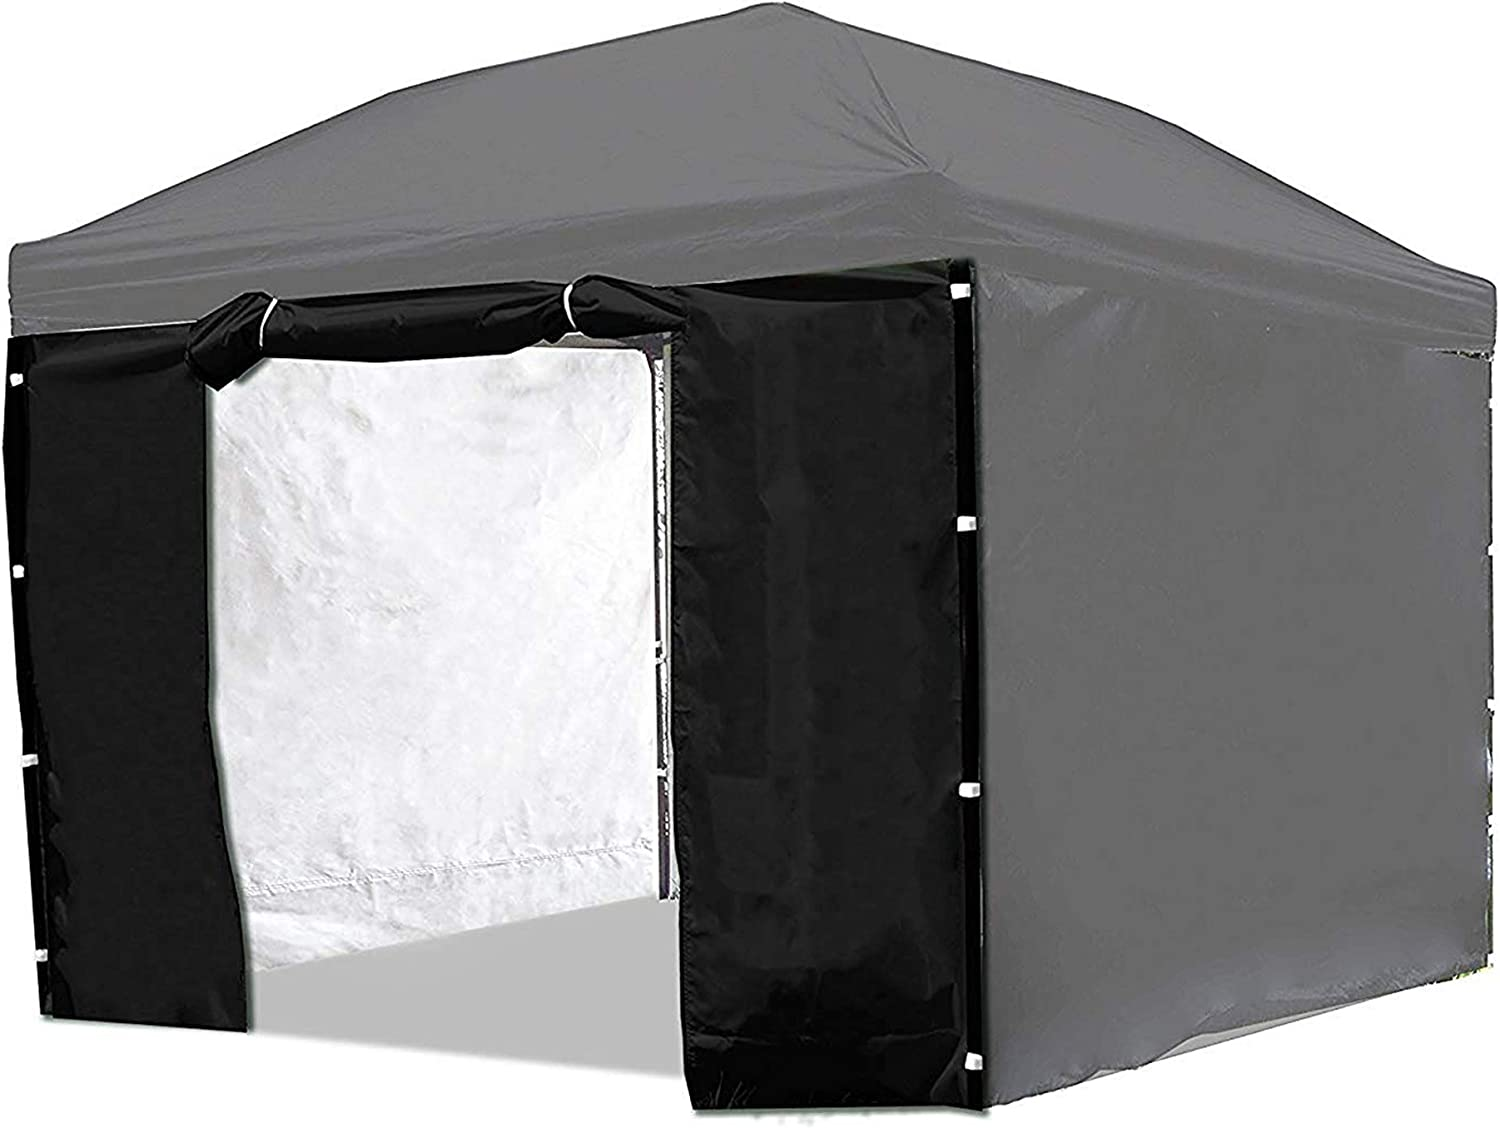 Punchau Canopy Side Wall Door – Black Sidewall with Door for 10×10 Feet Pop Up Canopy Tent